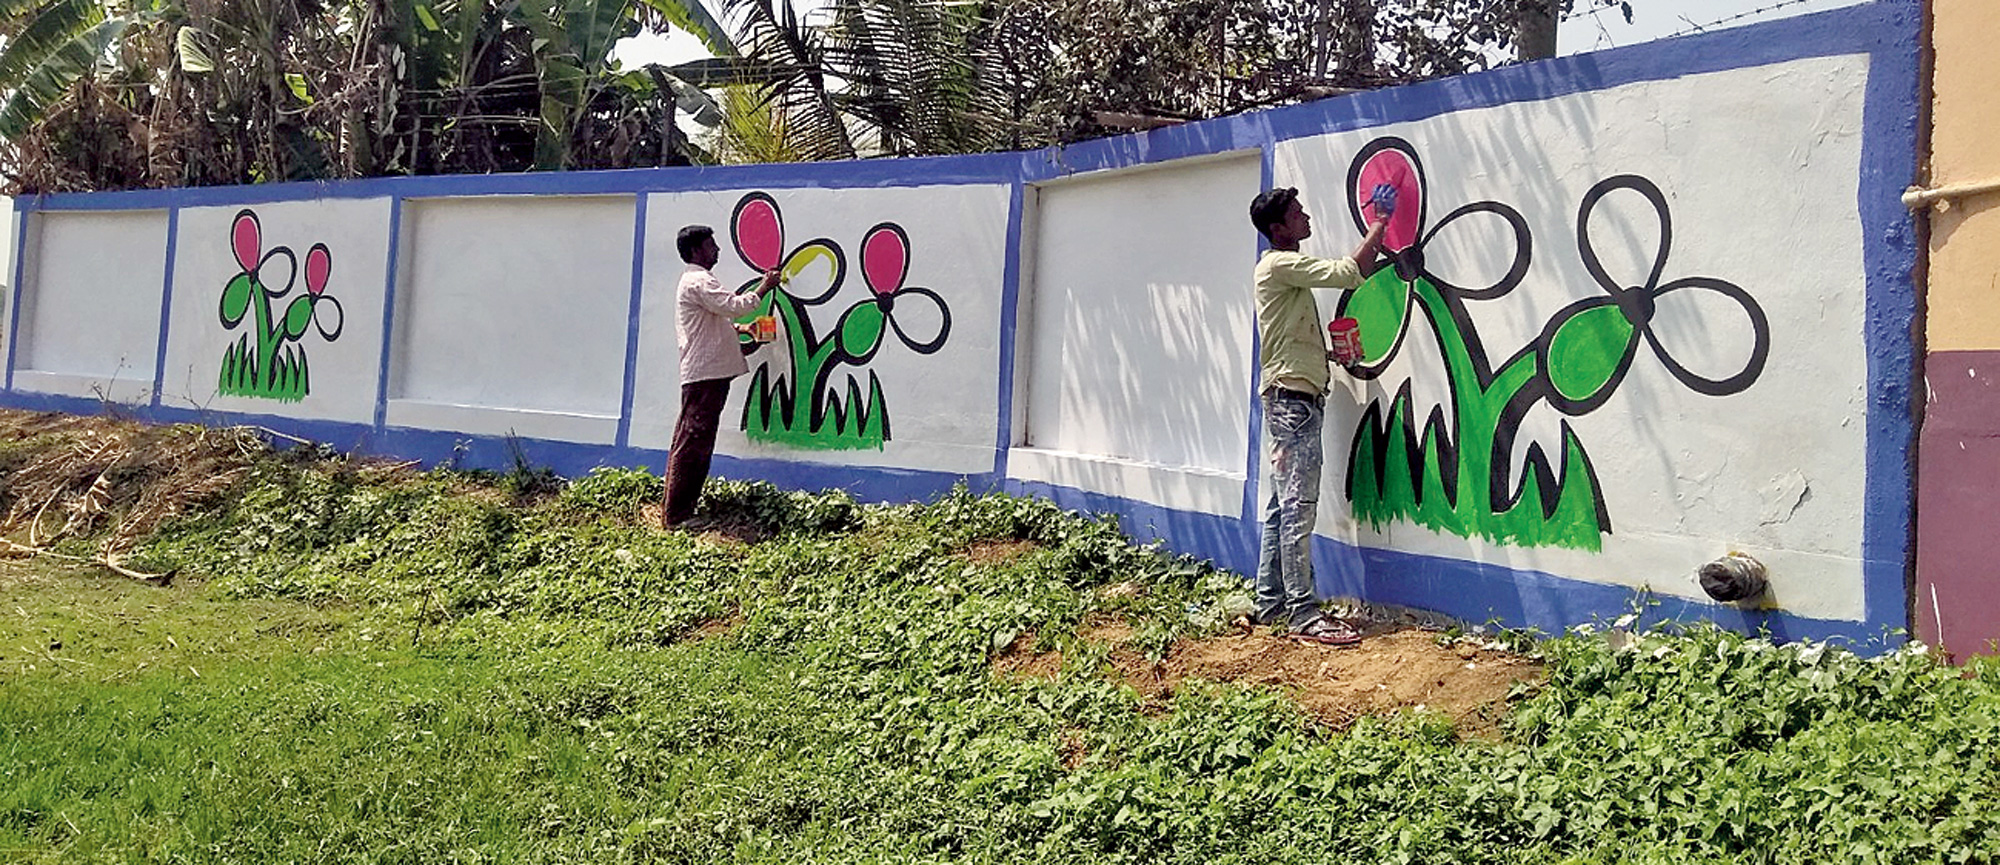 Trinamul workers paint the party's symbol on a wall in Birbhum's Parui.